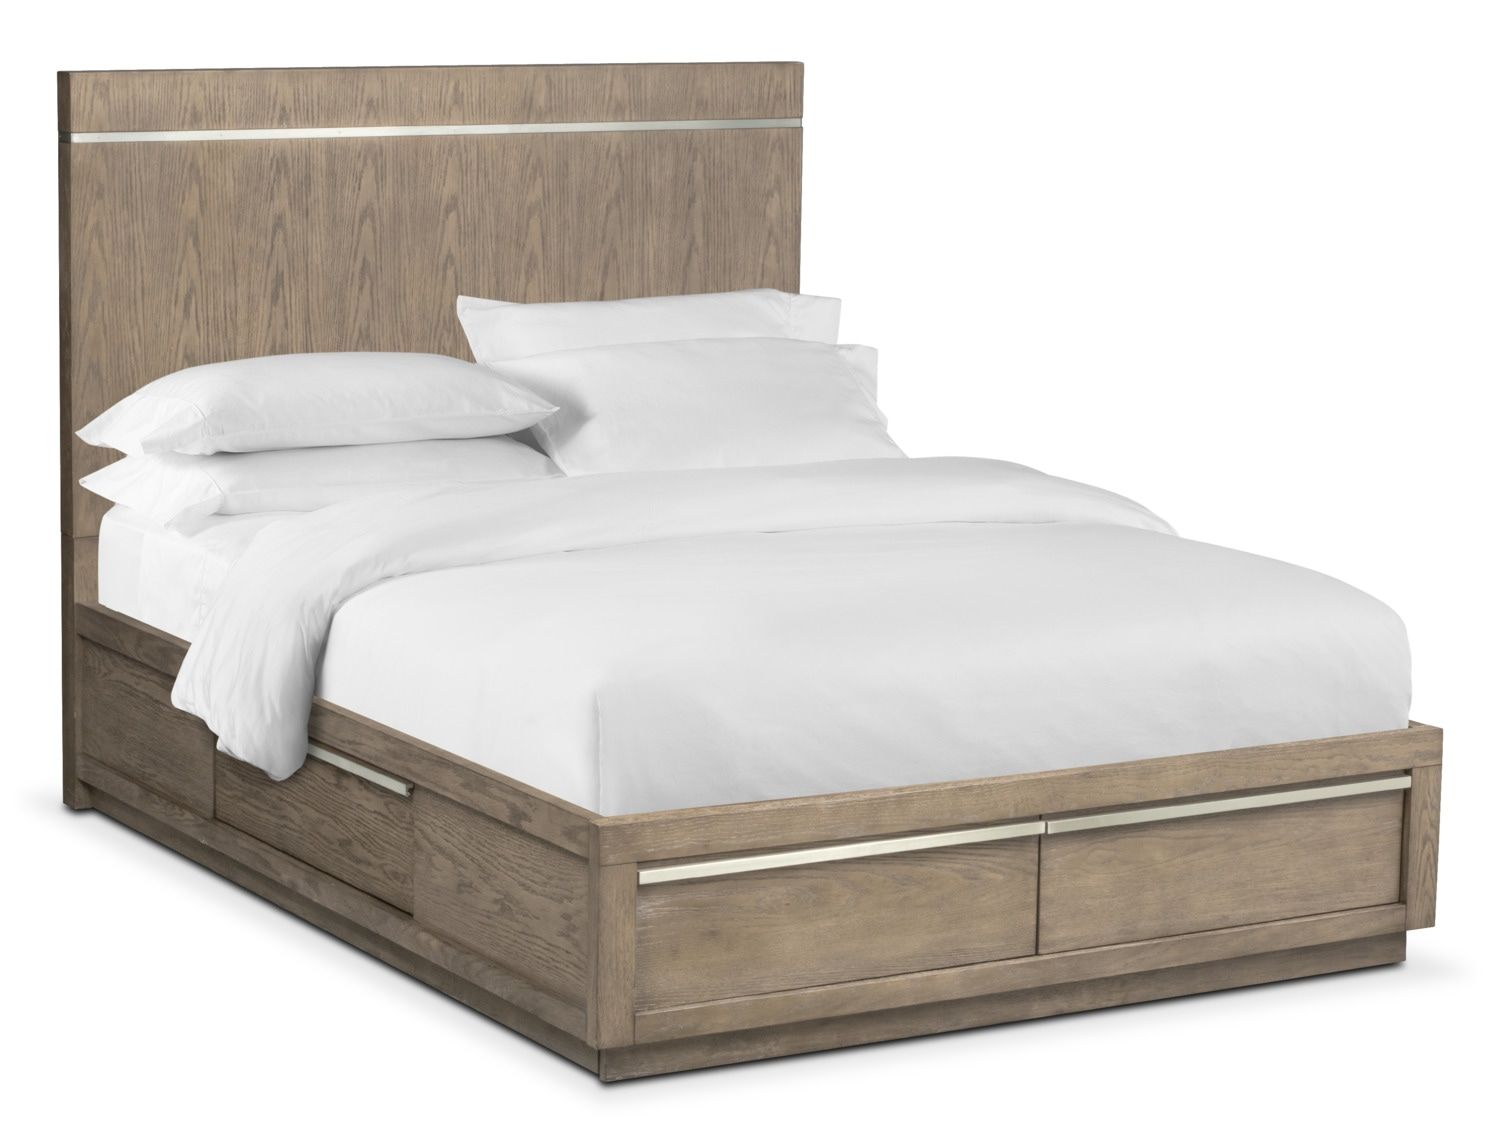 Guaranteed Everyday Low Price on Furniture Save on Beds